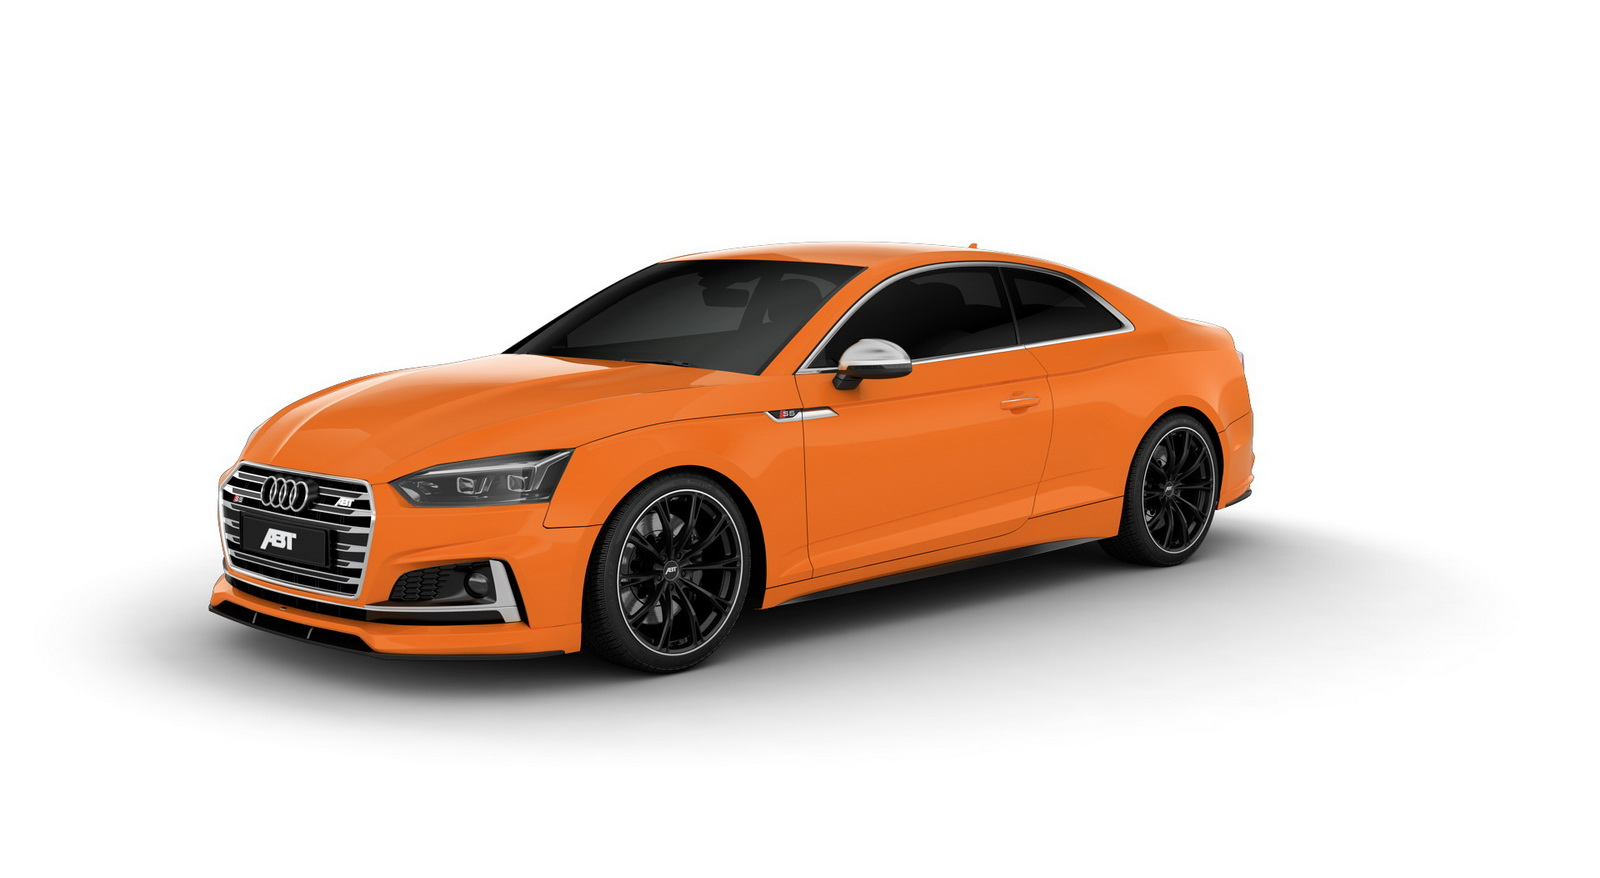 Second Fastest Car In The World >> ABT Unveil New Body Kit For Audi A5/S5 Range